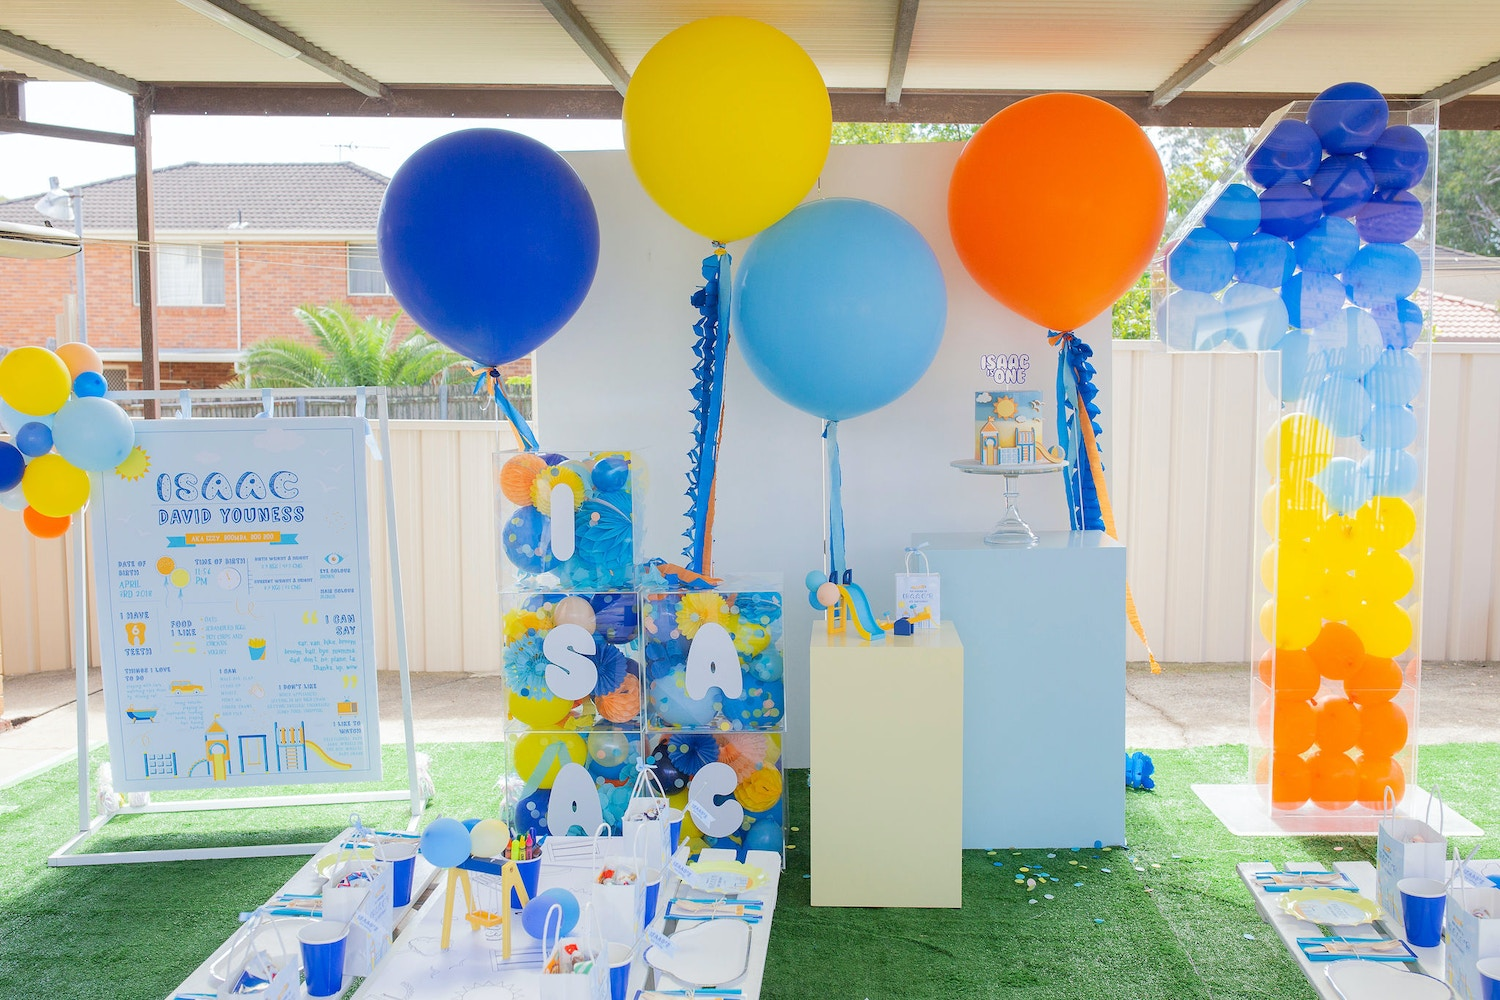 ISAAC'S BRIGHT PLAYGROUND 1ST BIRTHDAY PARTY